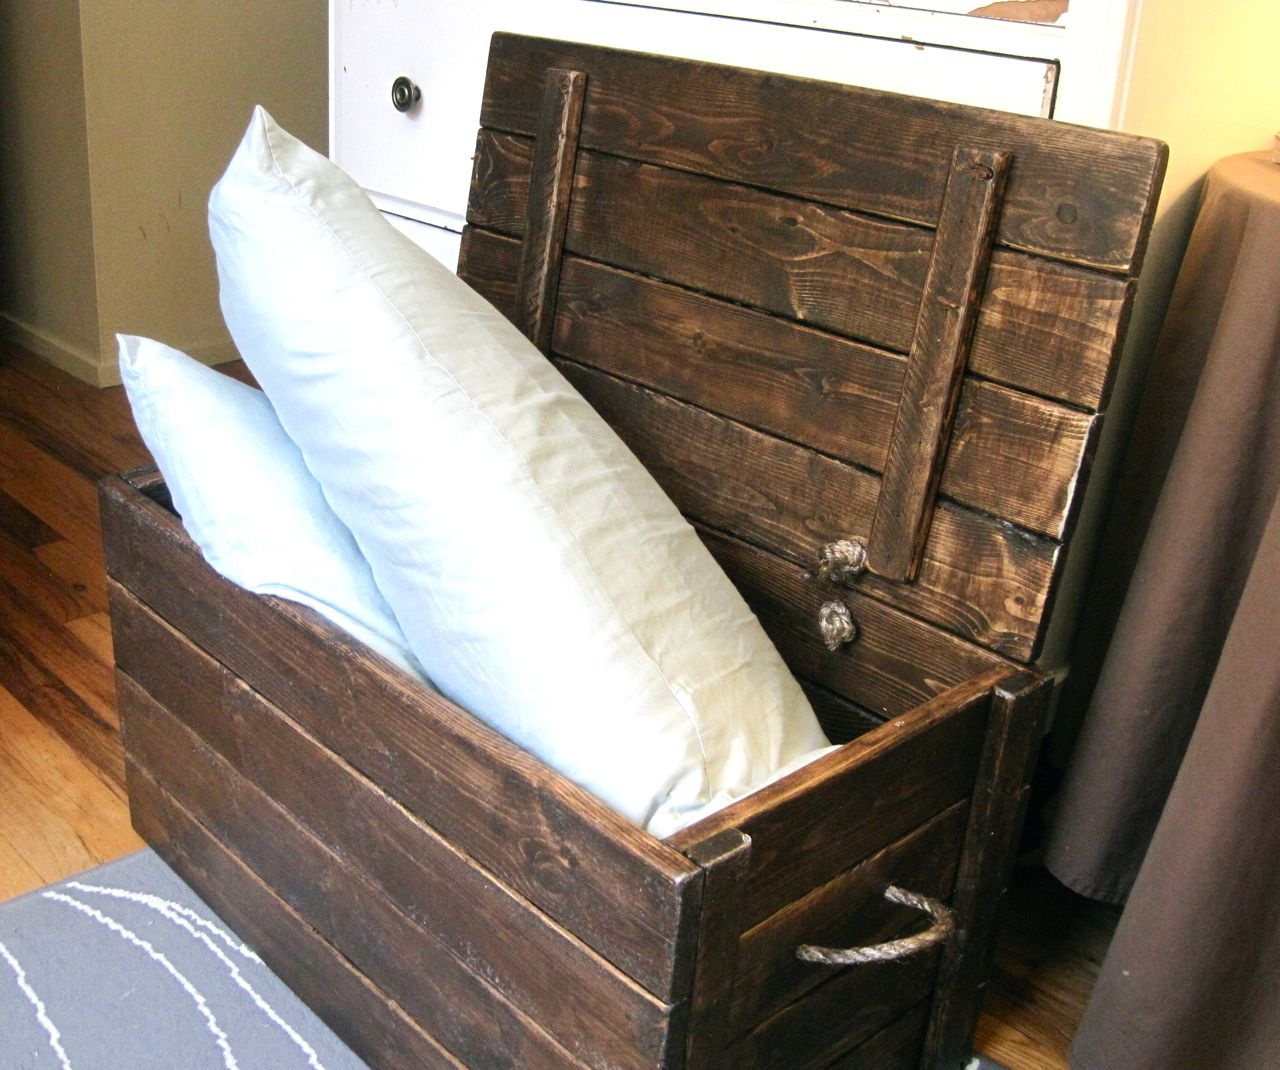 Make Your Own Wood Storage Chest With The Project Lady This Chest Features Rope Handles On The Sides And Makes The Diy Storage Trunk Wood Storage Diy Storage